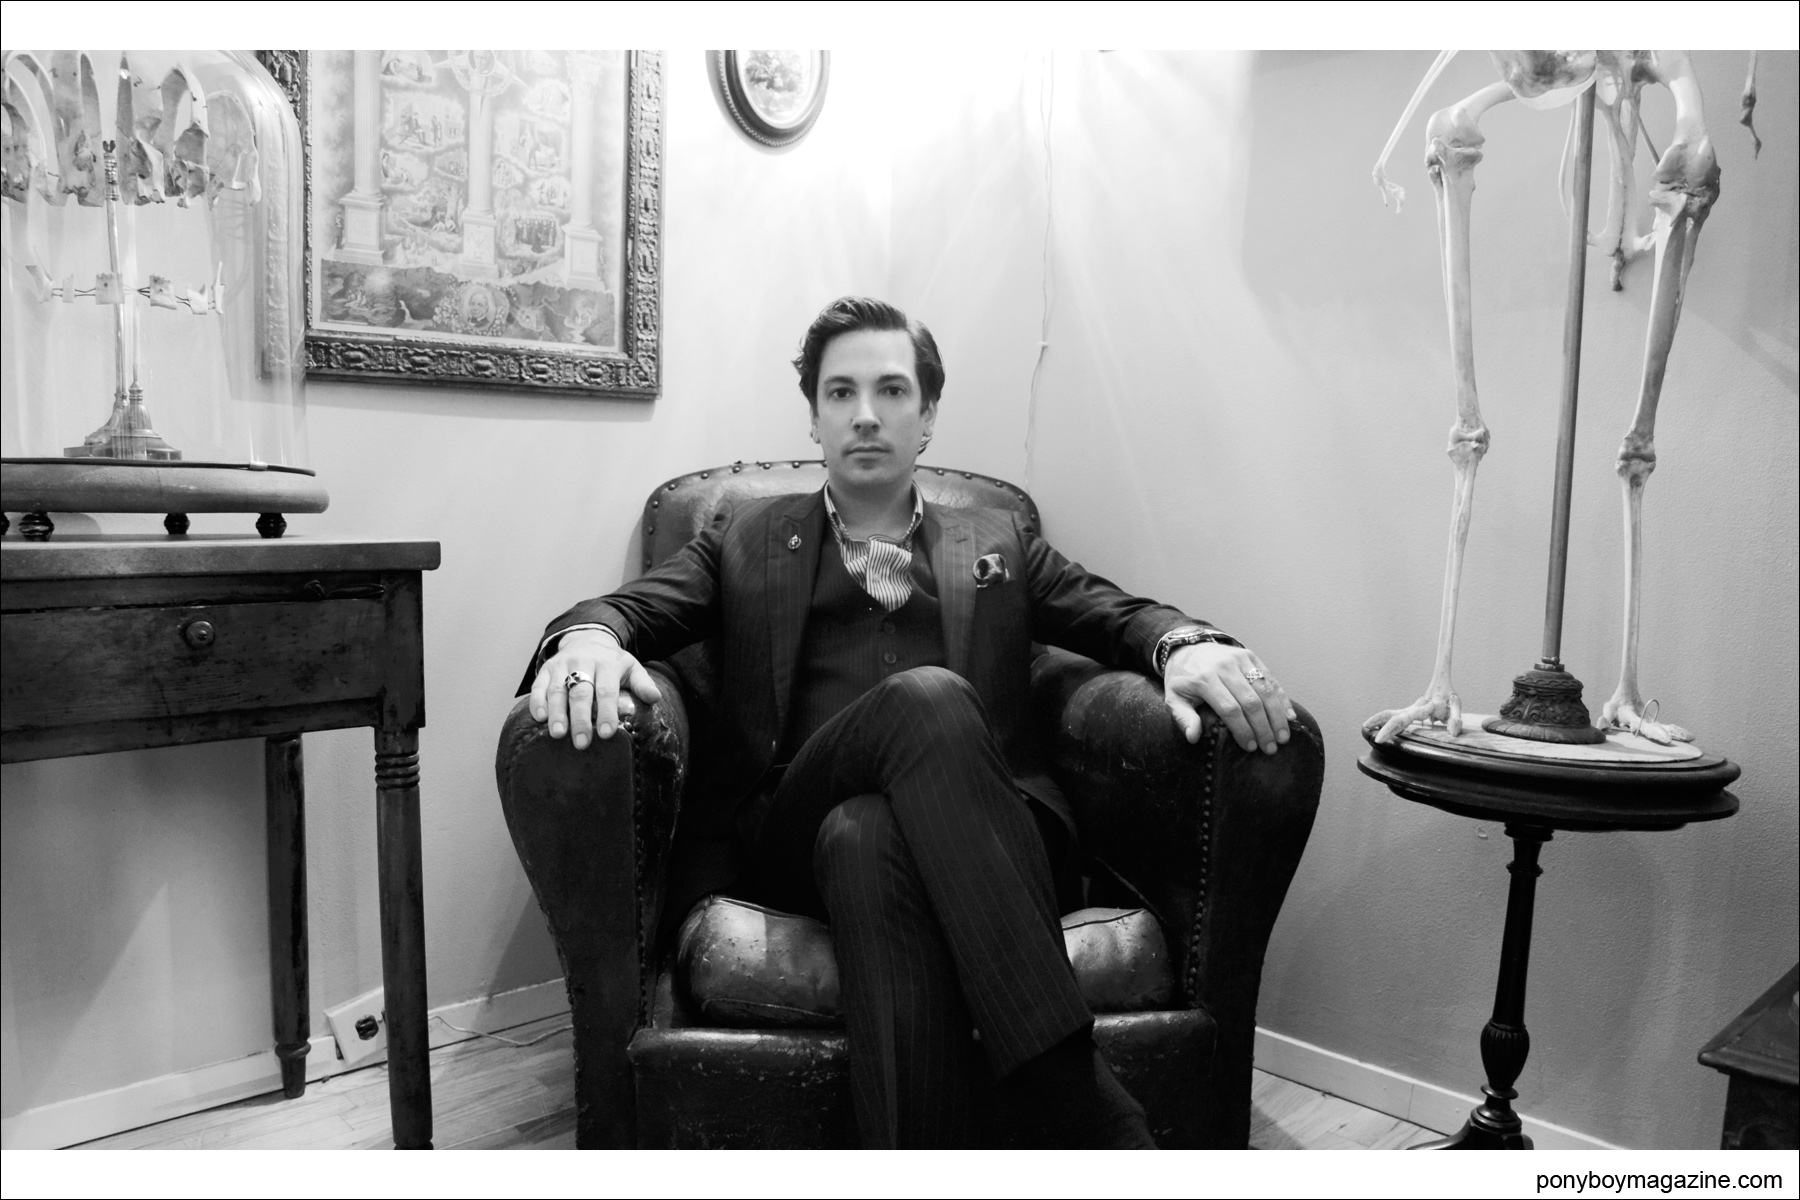 Star of Oddities Ryan Matthew Cohn photographed in his Brooklyn home by Alexander Thompson for Ponyboy Magazine.